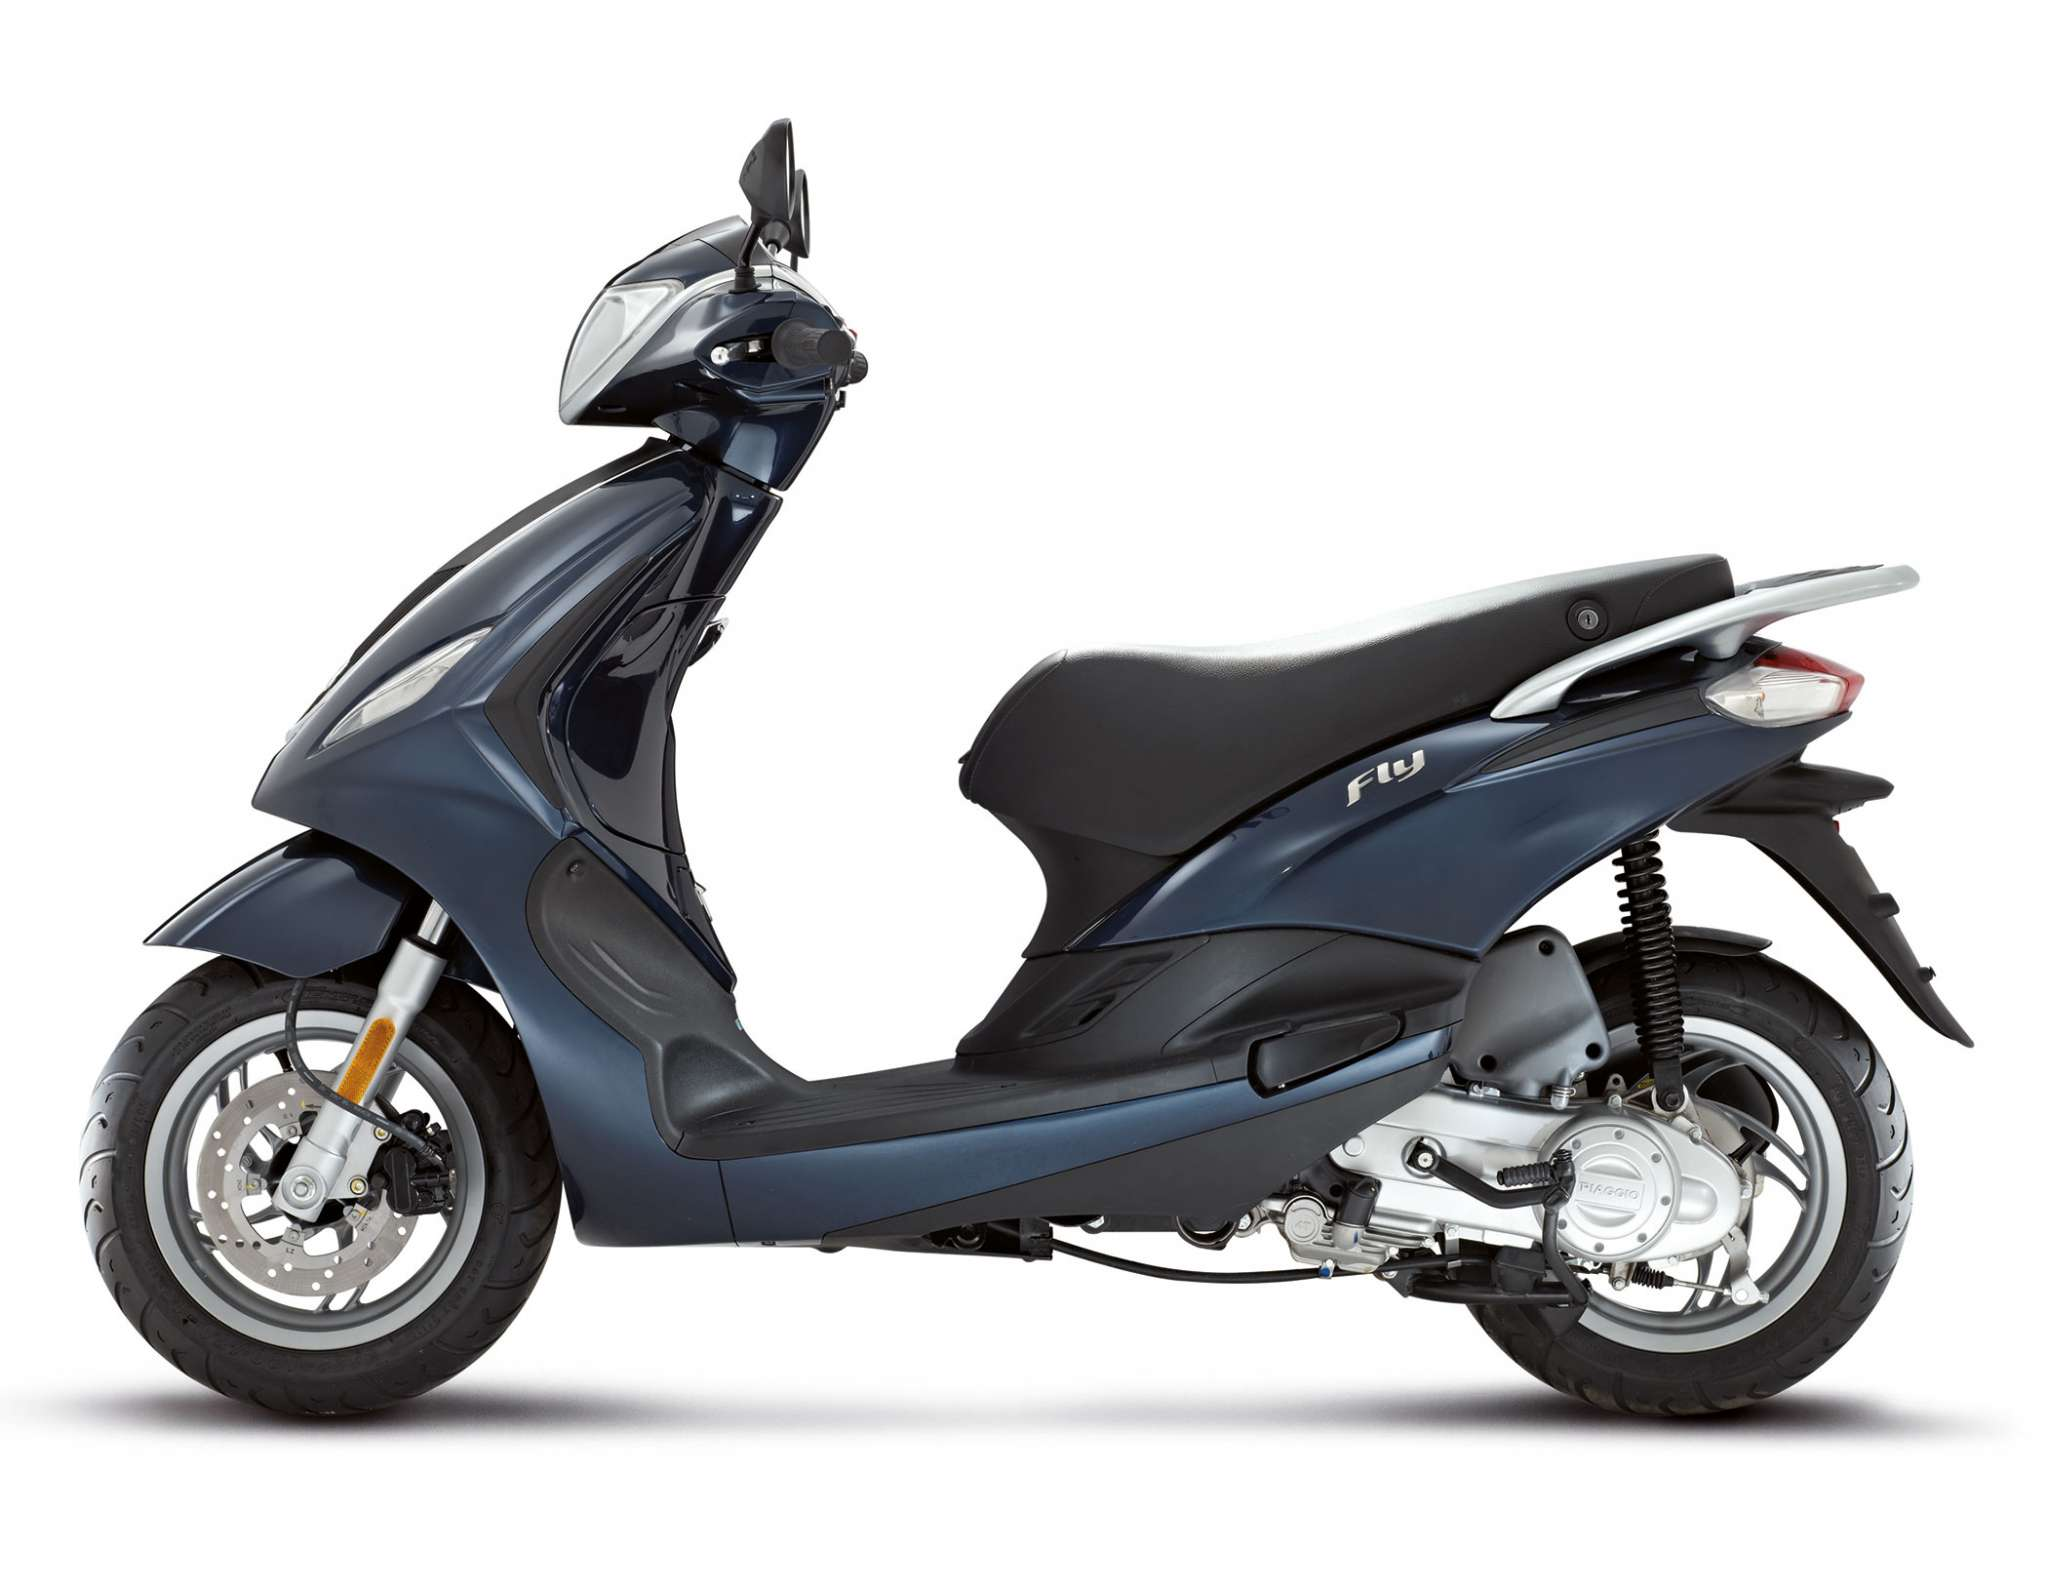 2013 Piaggio Fly 150 Scooter Review